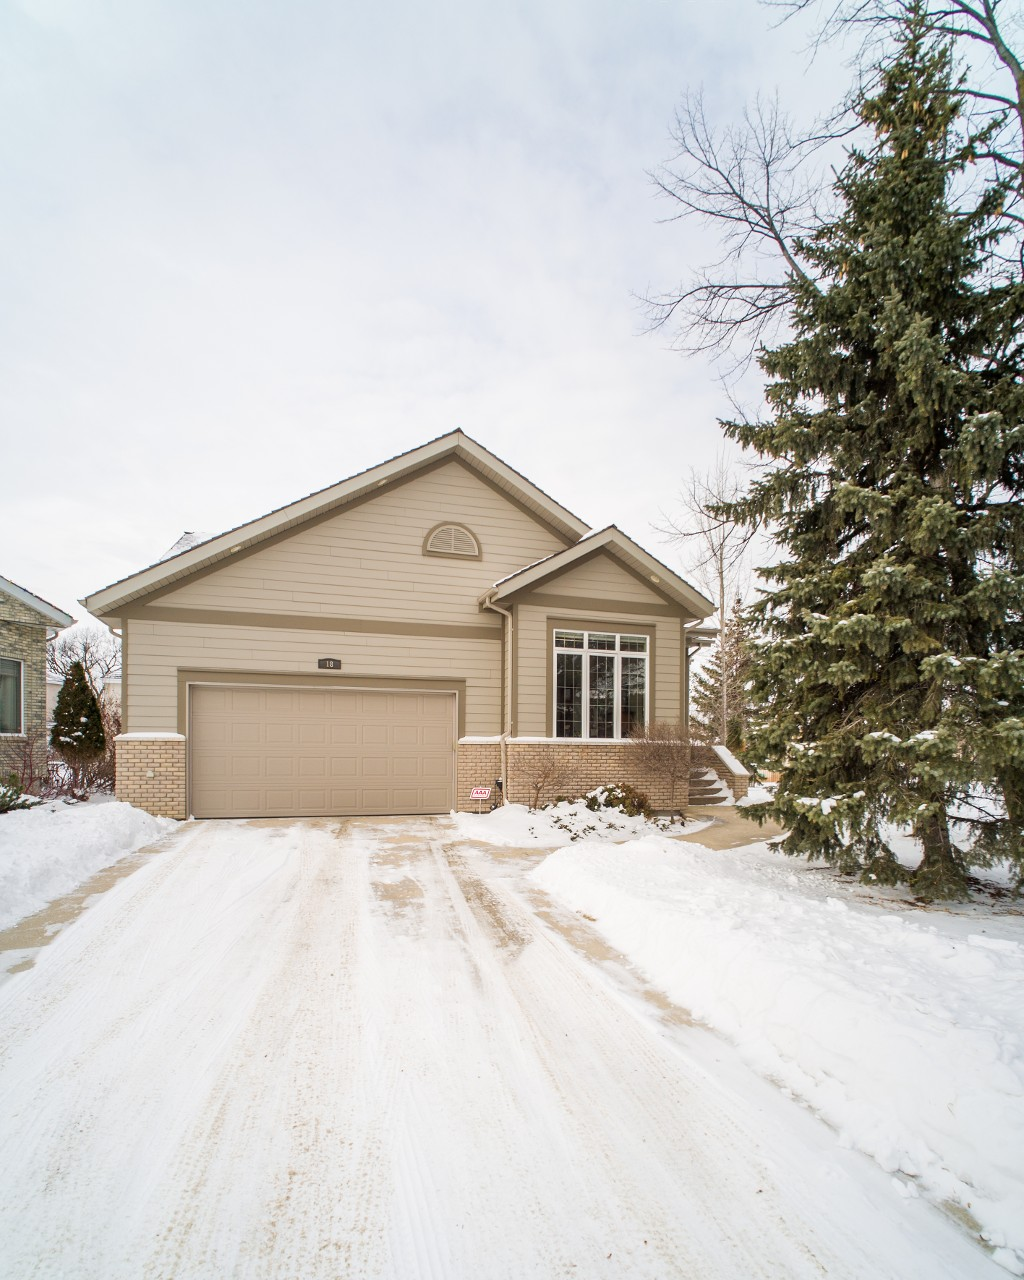 Main Photo: 18 Lacroix Bay in : Charleswood Single Family Detached for sale (South Winnipeg)